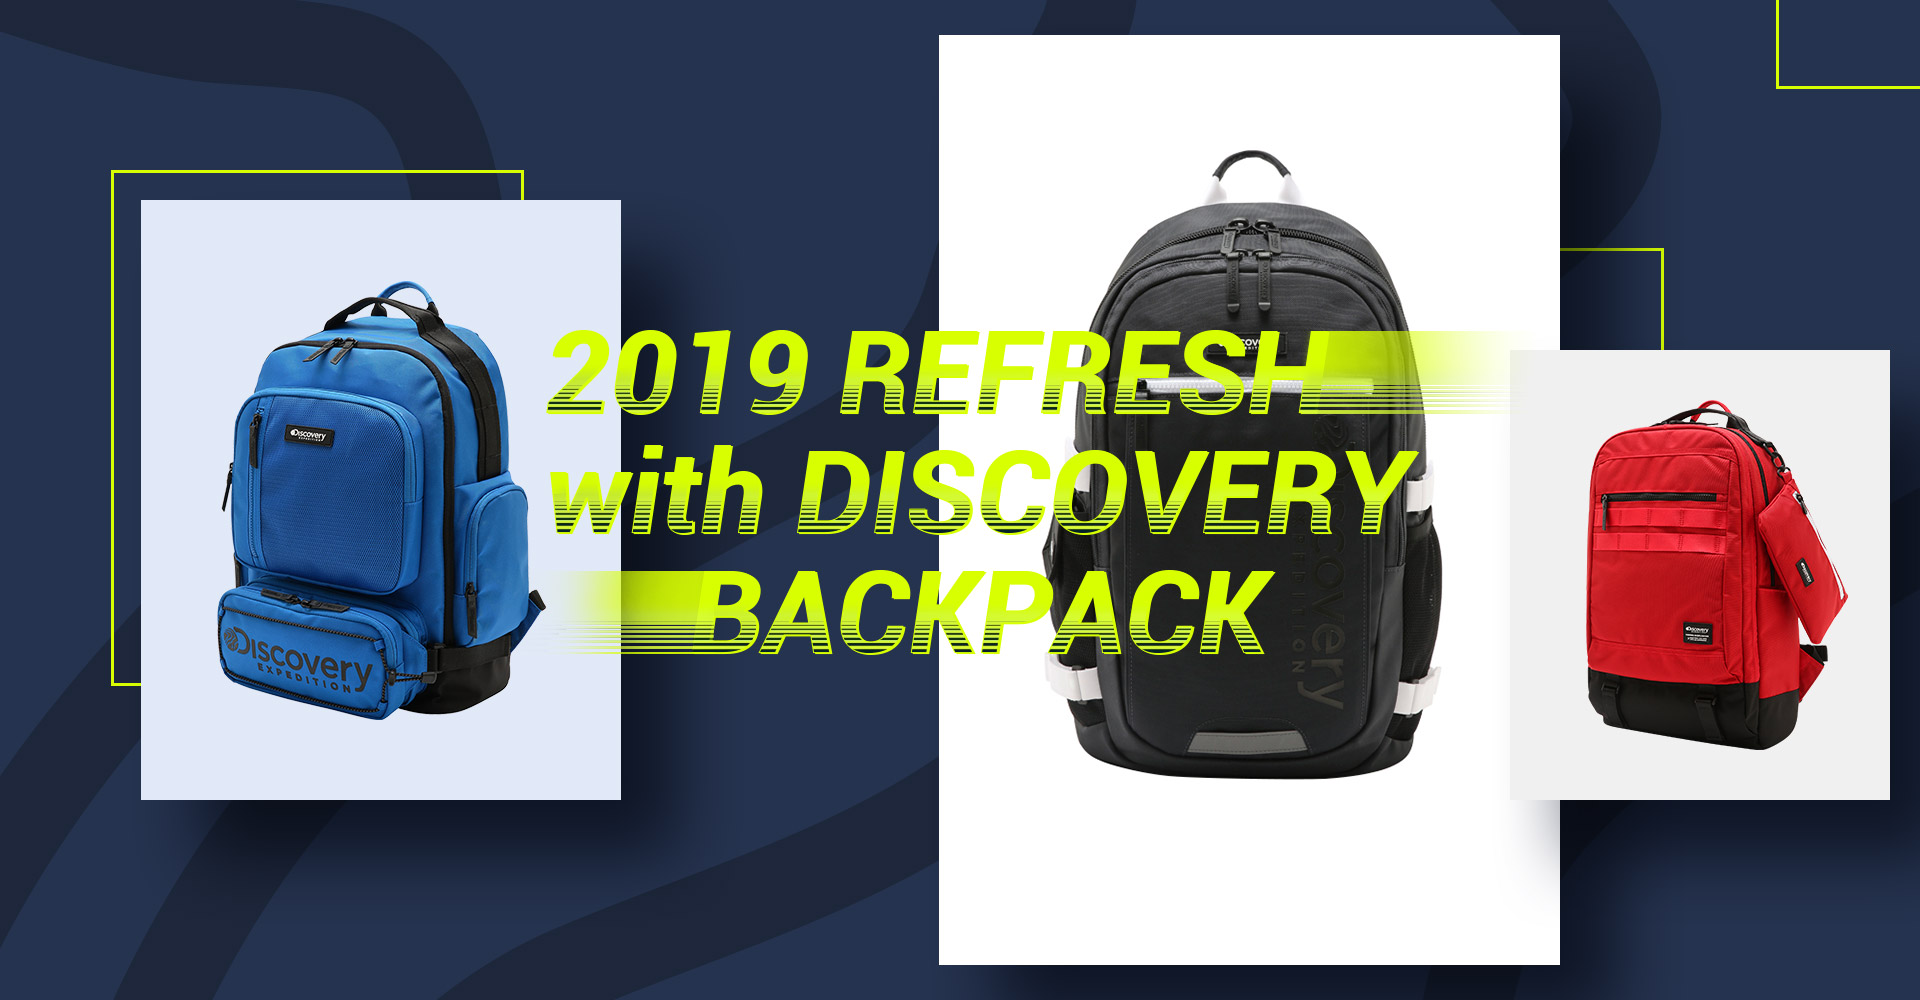 2019 REFRESH with DISCOVERY BACKPACK